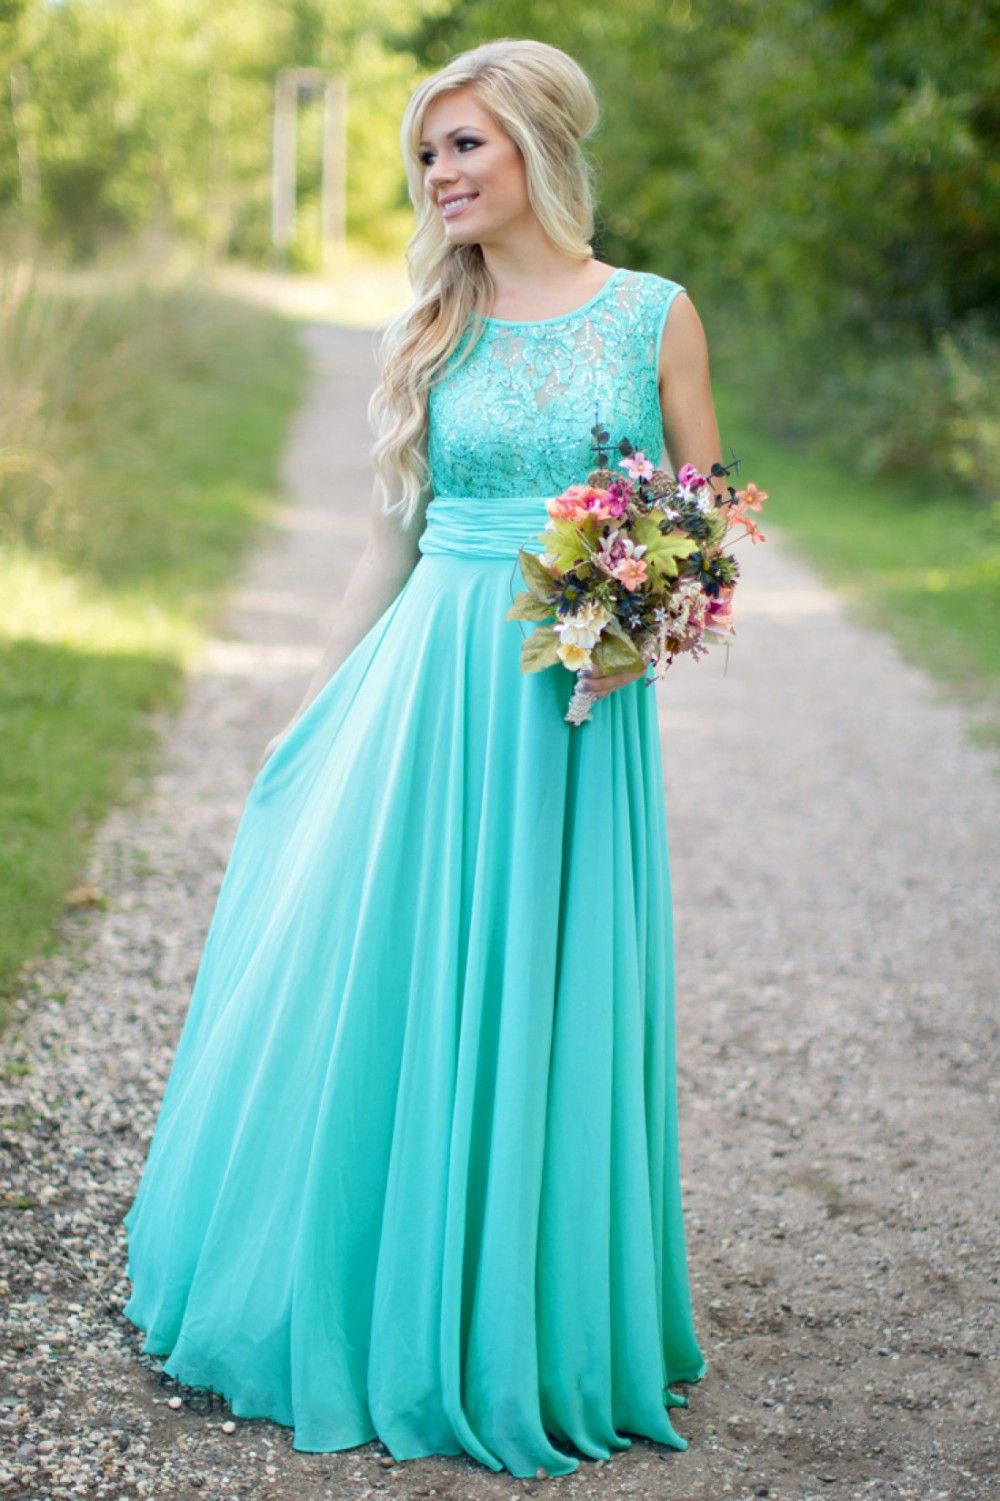 New fashion long bridesmaid dresses for wedding brideschiffon new fashion long bridesmaid dresses for wedding brideschiffon mint green women evening gowns ombrellifo Choice Image